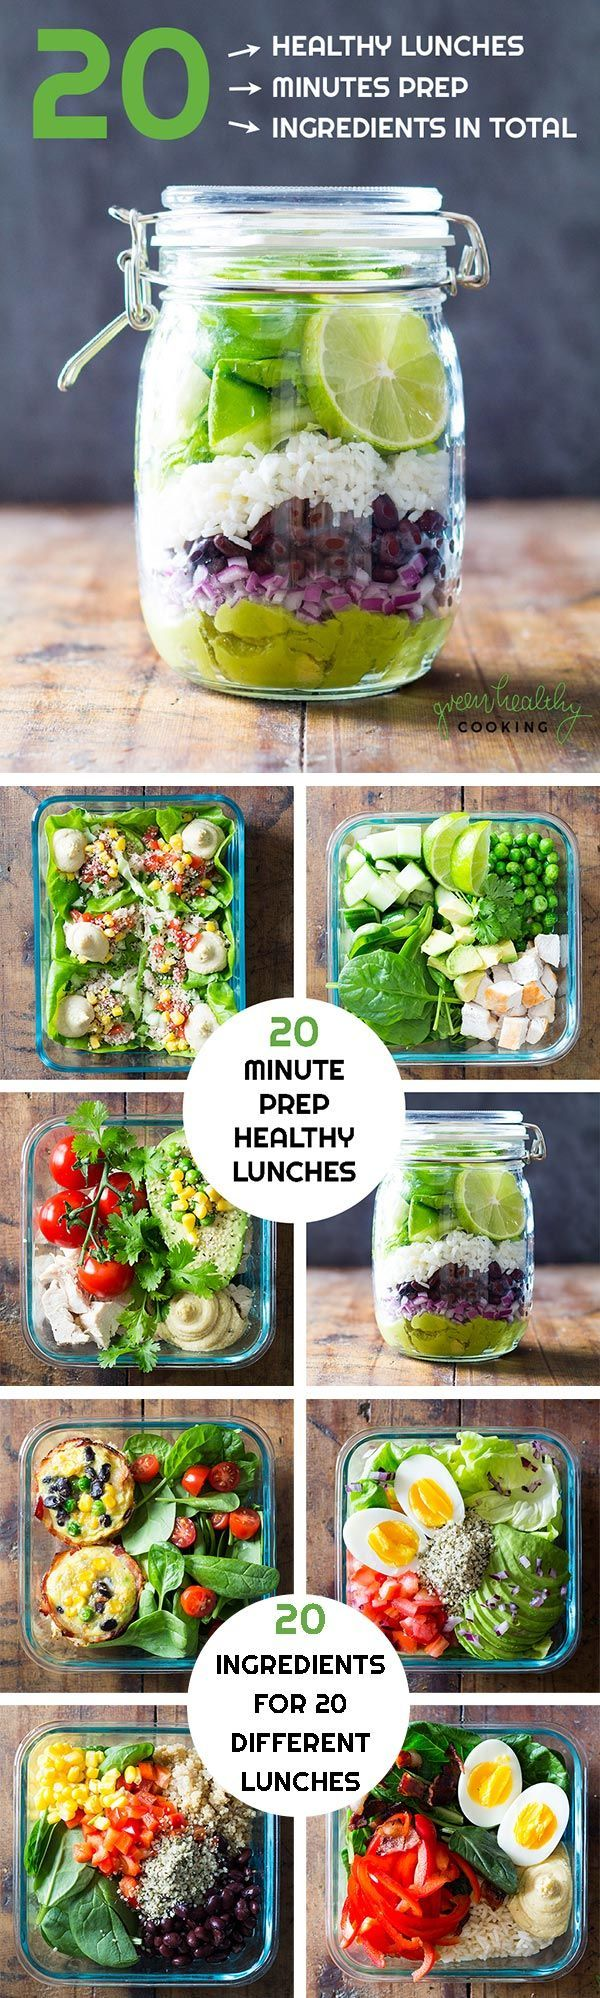 TWENTY is an e-Book offering 20 healthy lunch recipes prepared in maximum 20 minutes each and with only 20 ingredients in total for all 20 recipes.